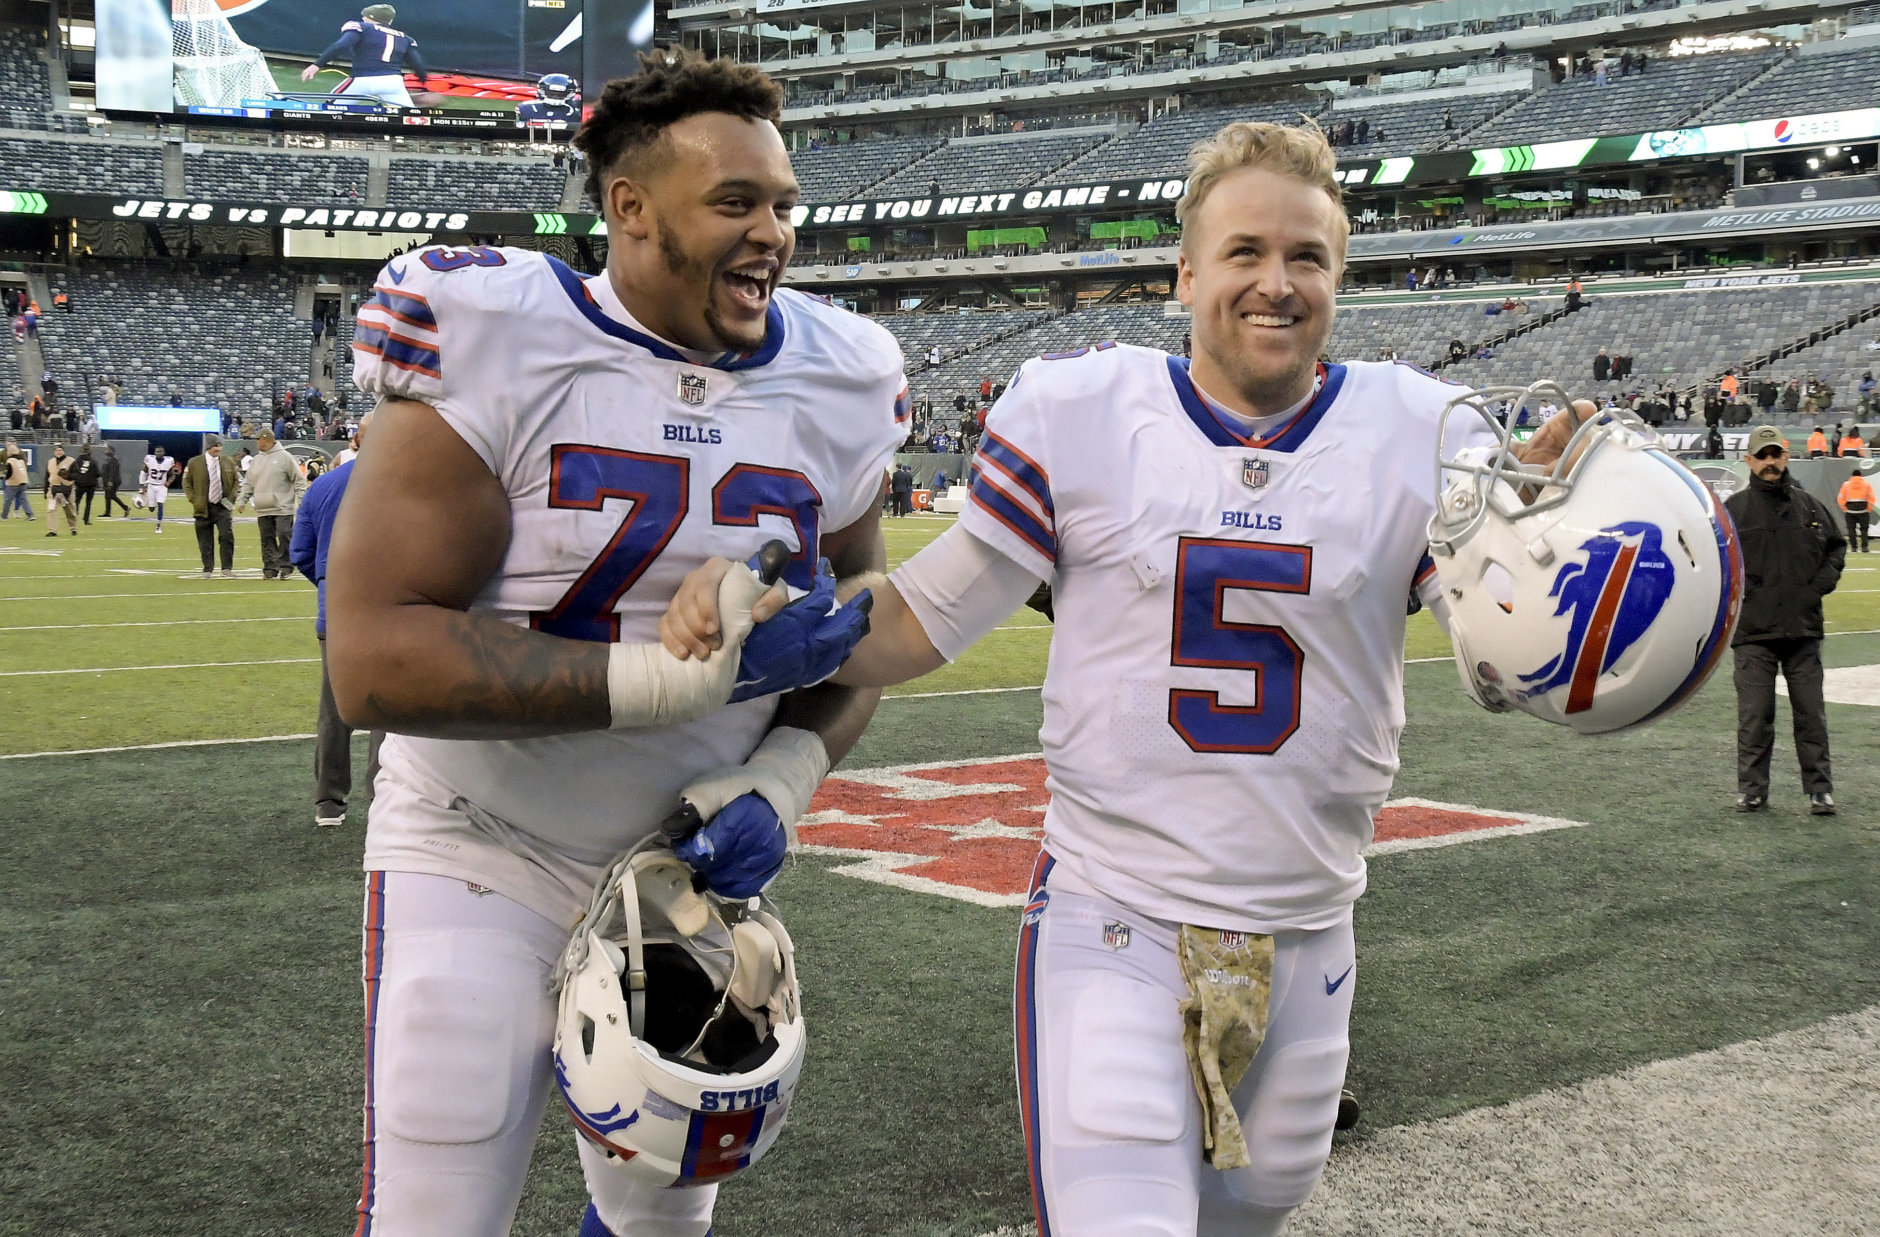 Buffalo Bills quarterback Matt Barkley (5) and Buffalo Bills offensive tackle Dion Dawkins (73) walk off the field after an NFL football game against the New York Jets, Sunday, Nov. 11, 2018, in East Rutherford, N.J. (AP Photo/Bill Kostroun)